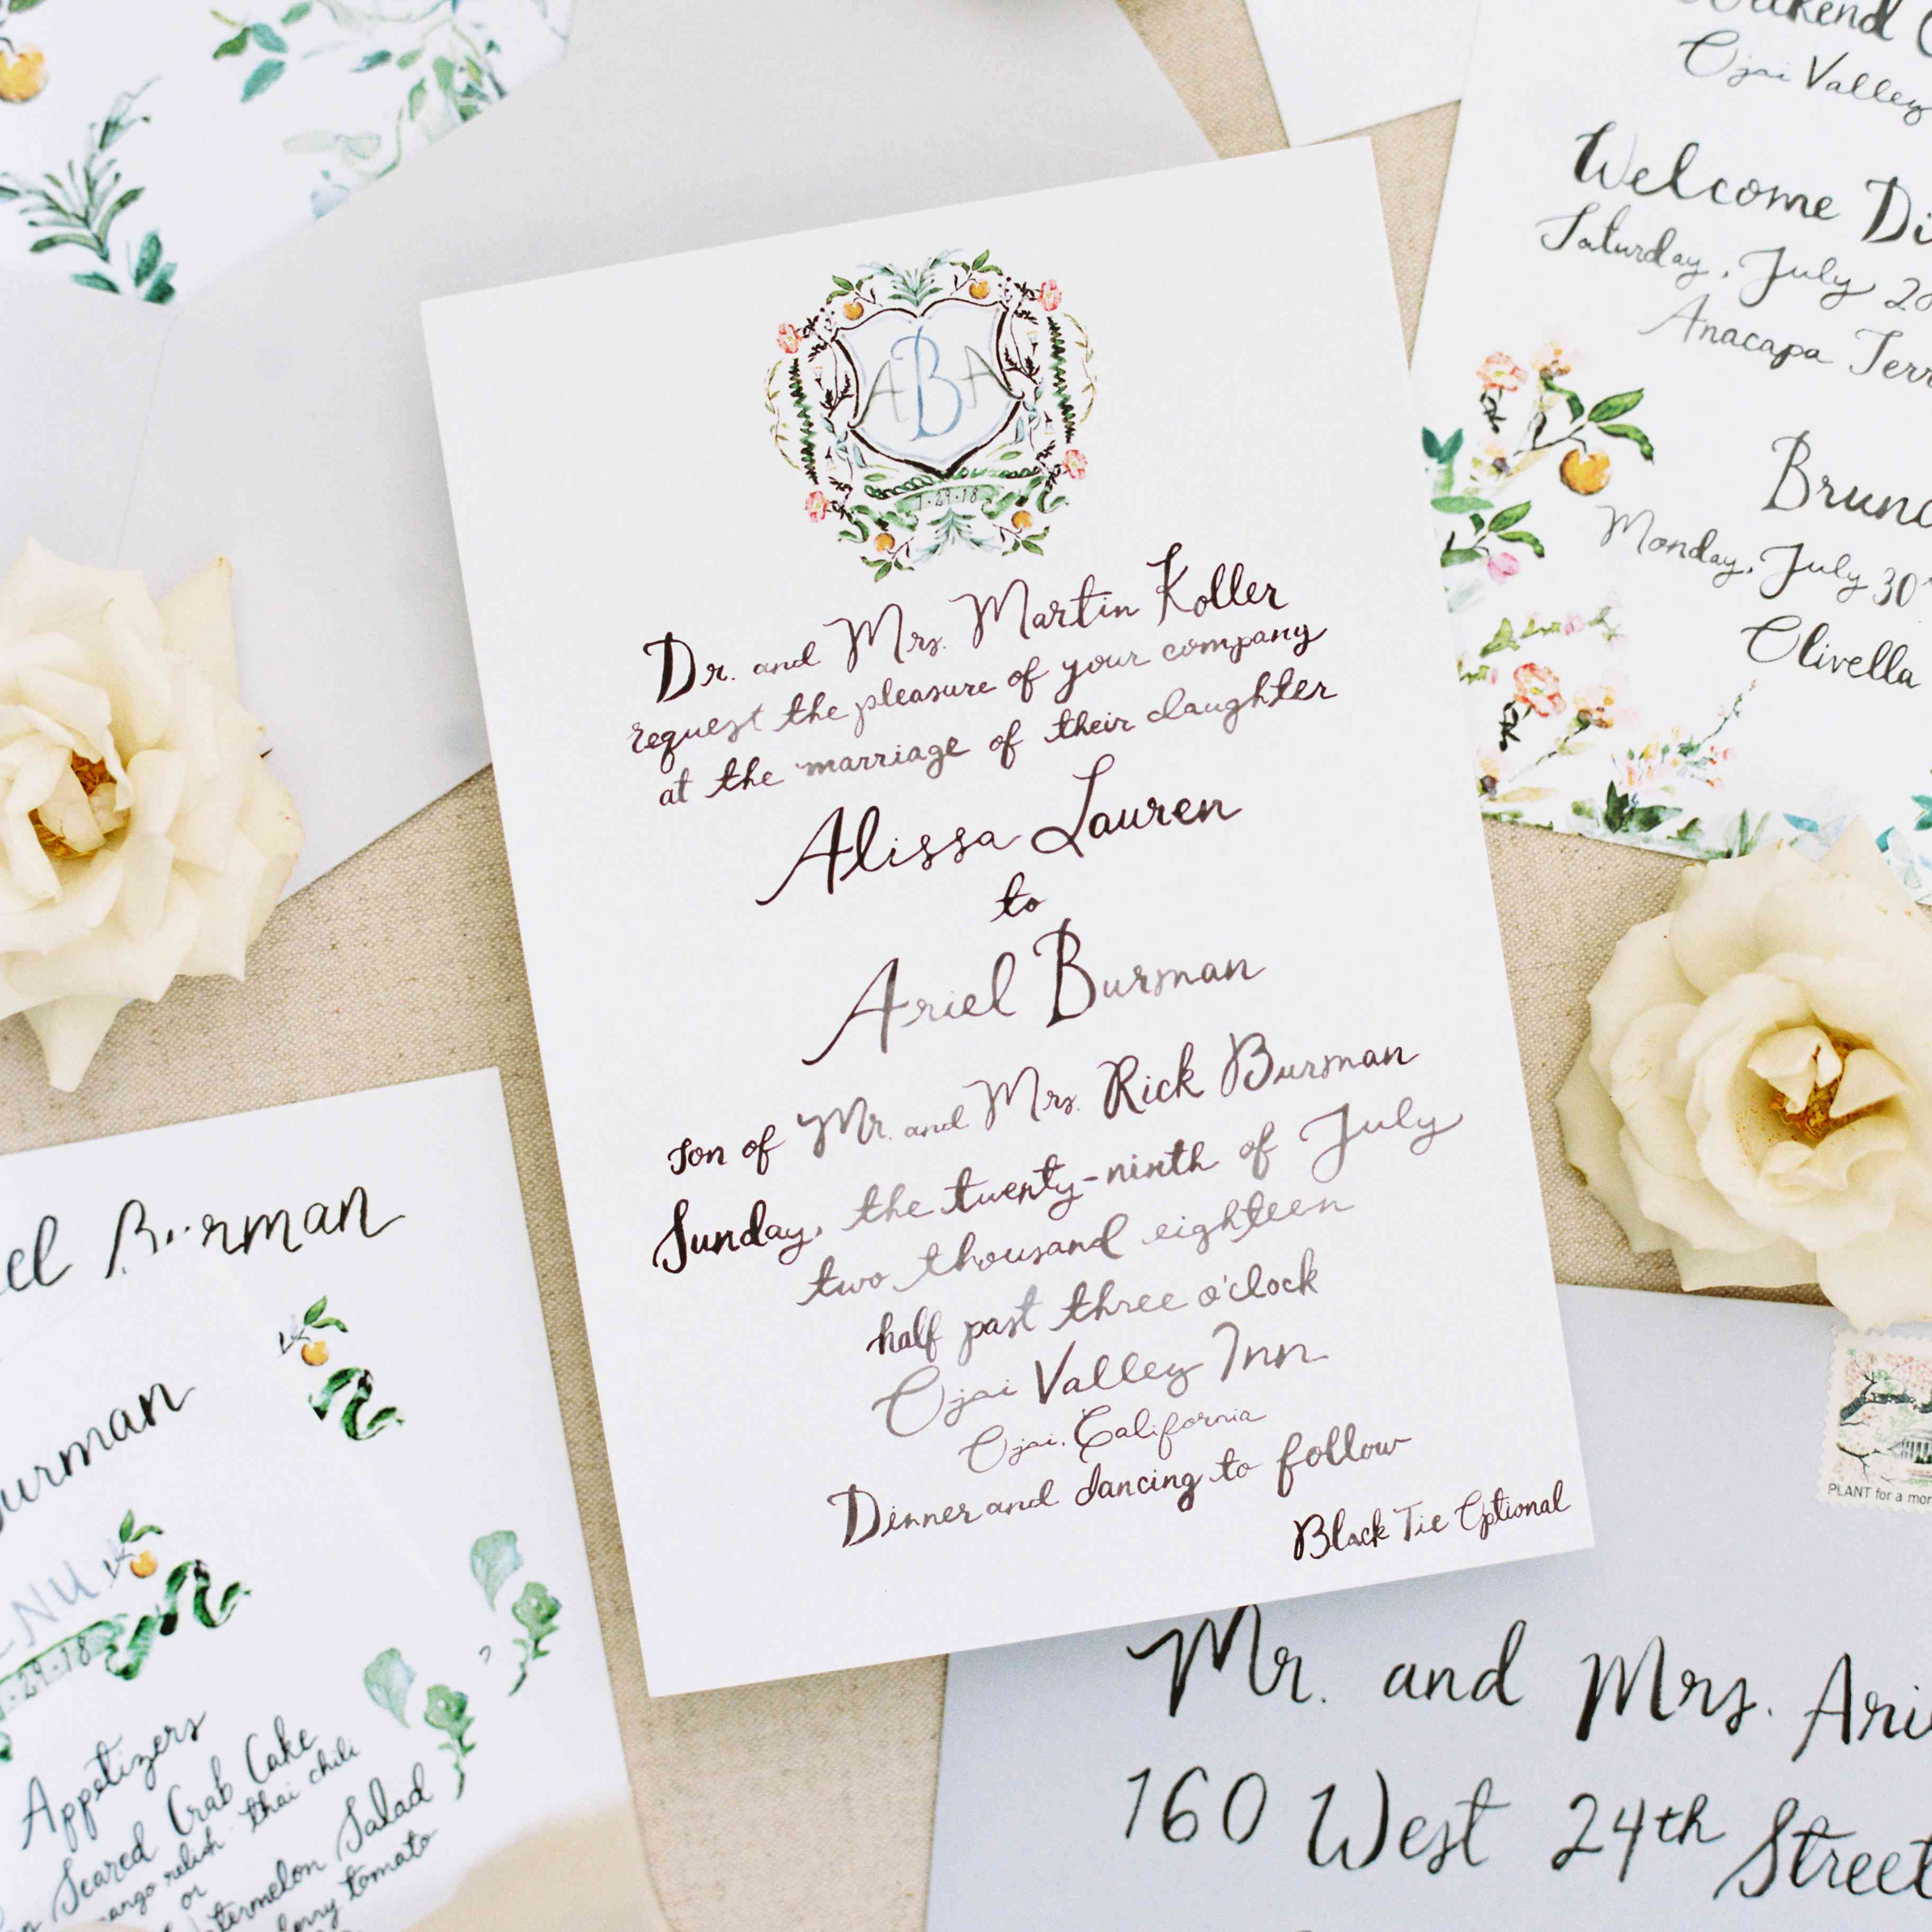 Wedding Invitation Sms Sample: A Romantic Garden Wedding At California's Ojai Valley Inn